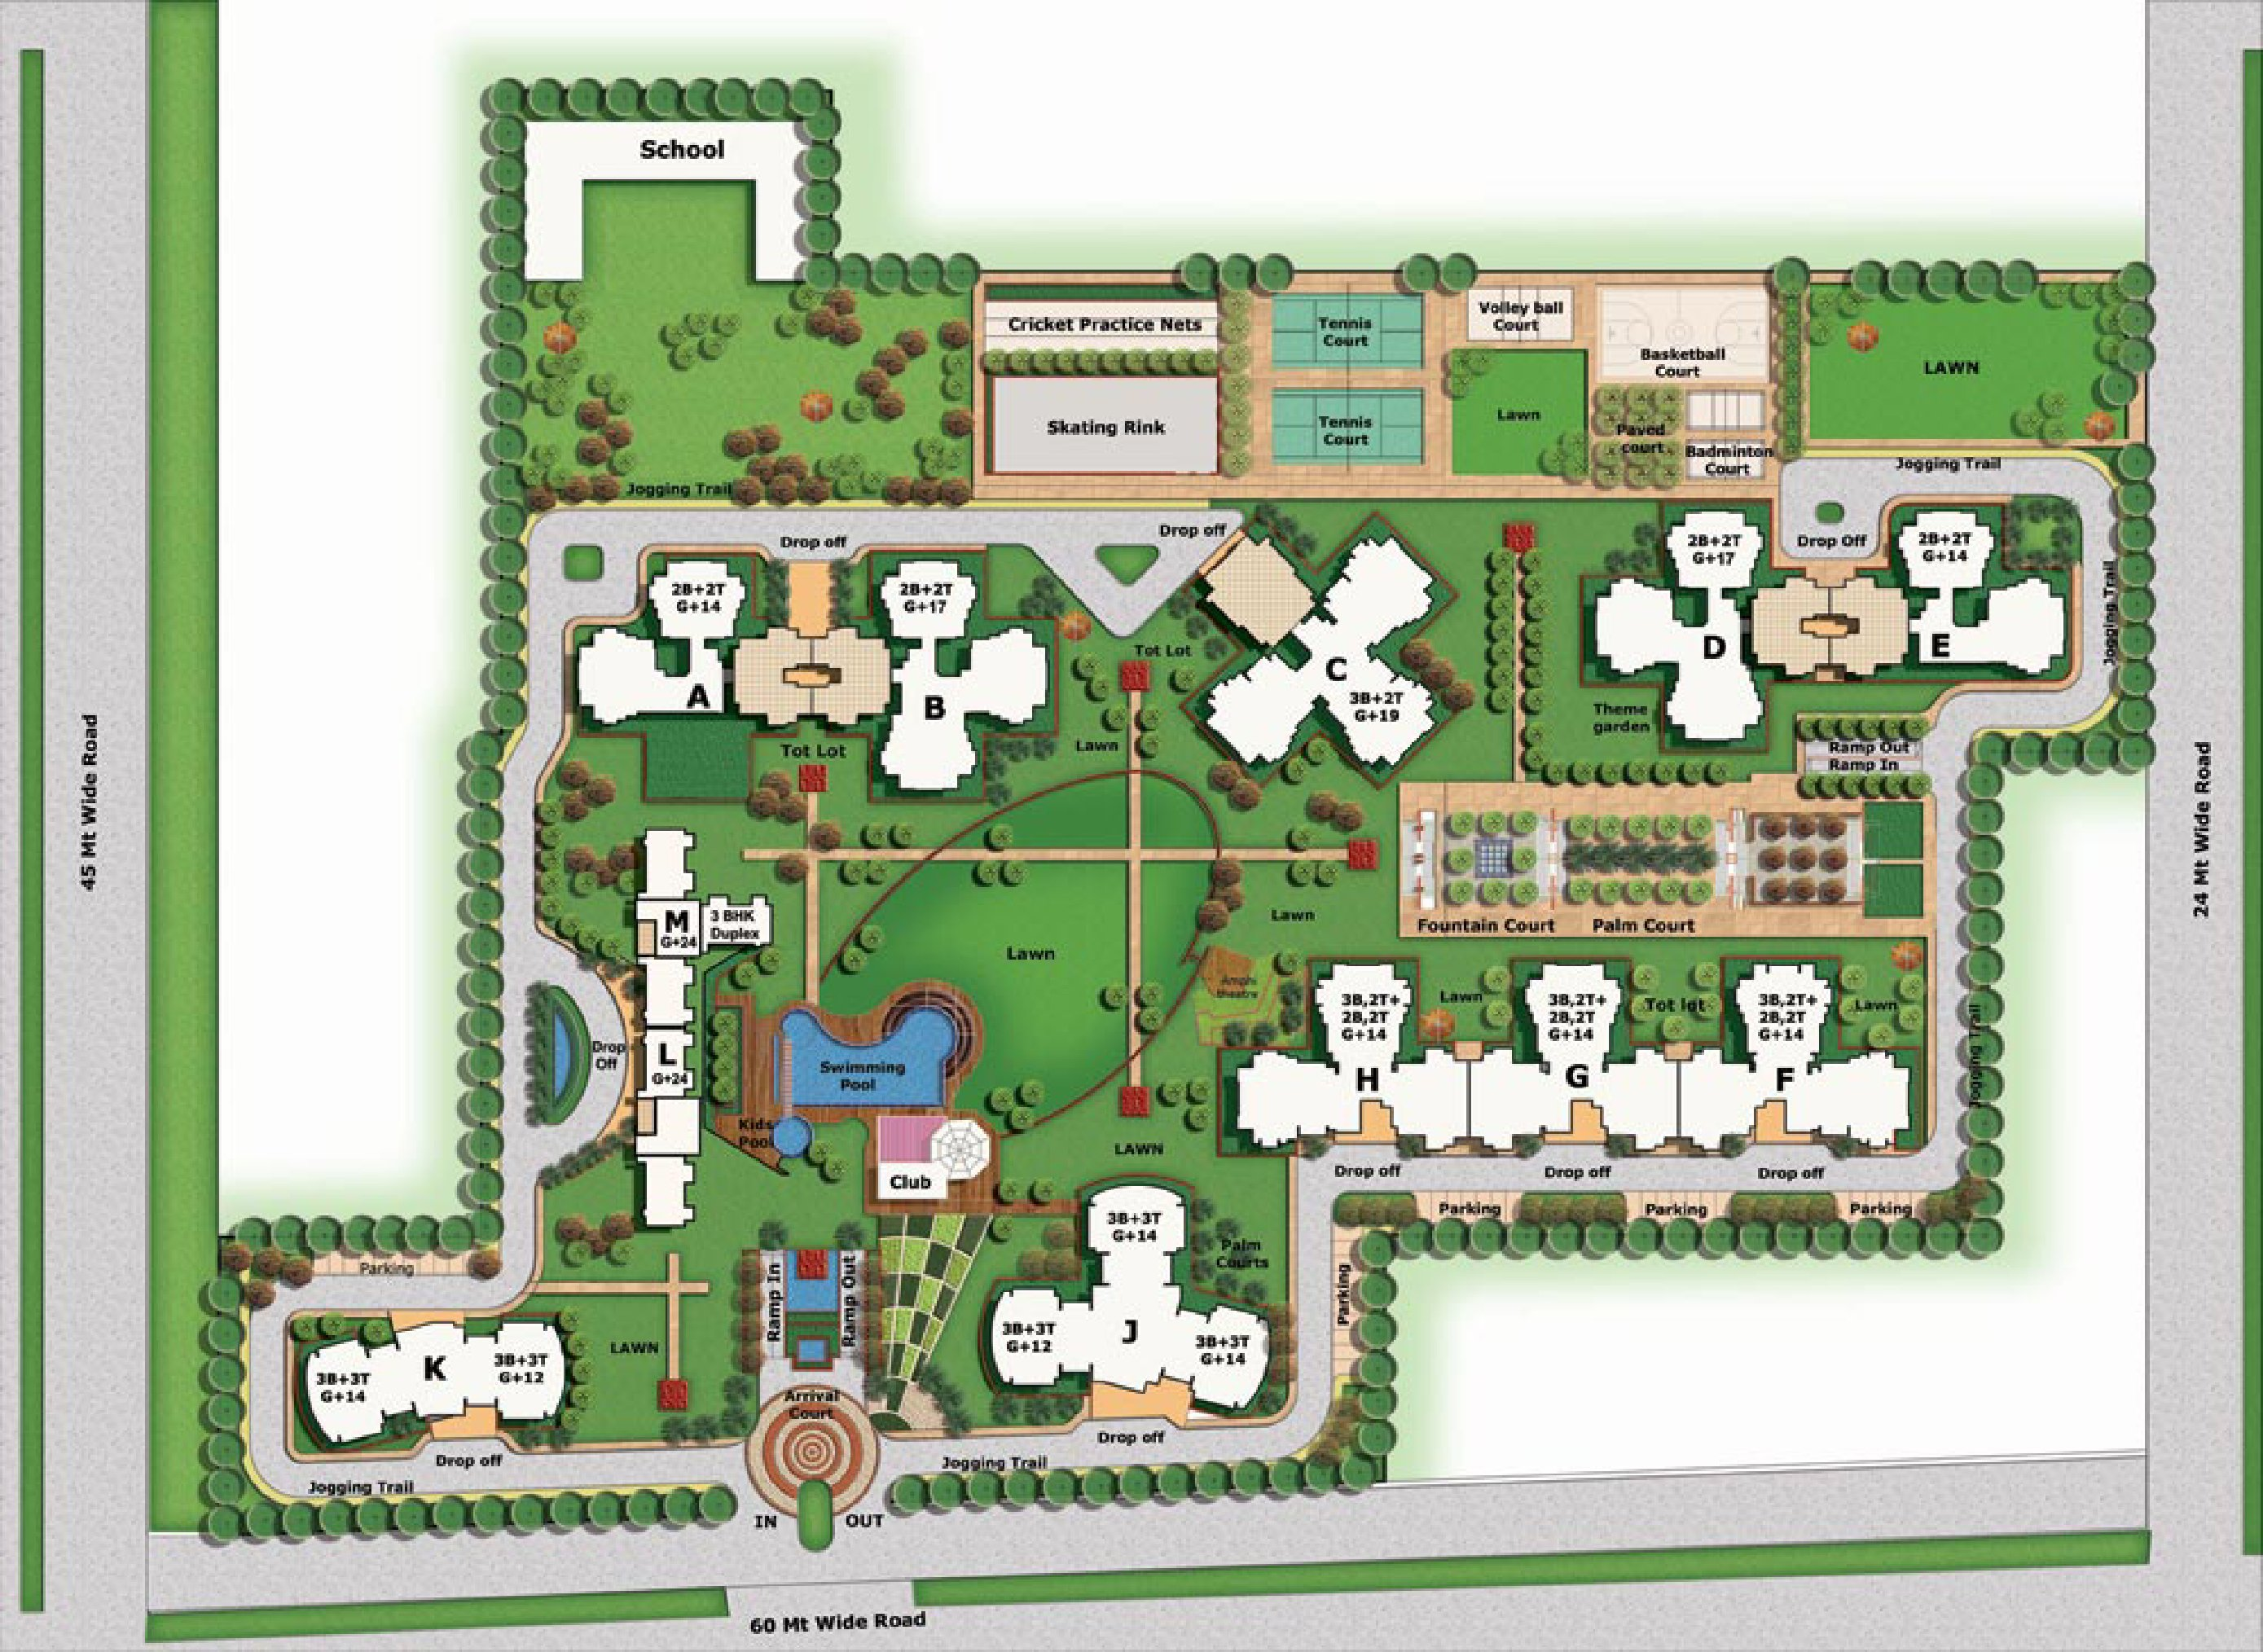 bptp discovery park site plan